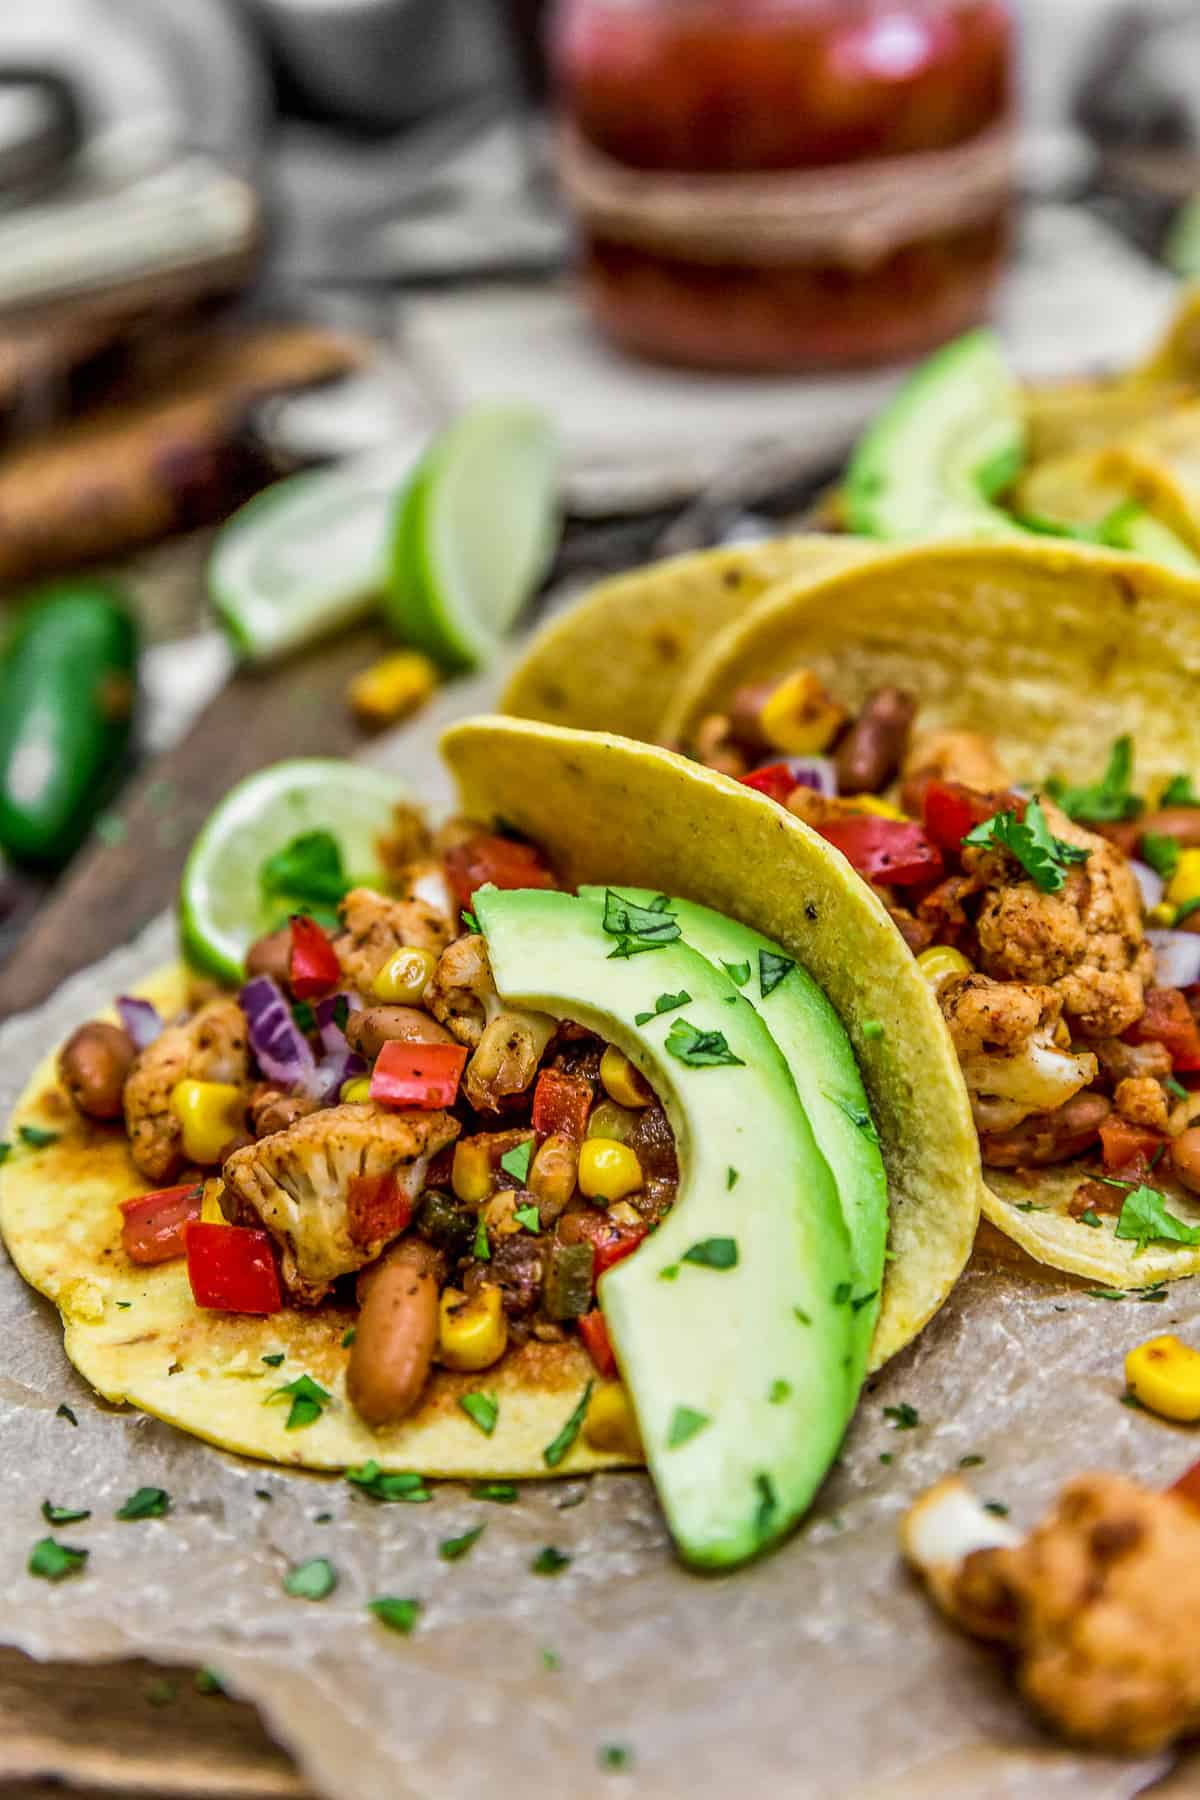 Cauliflower Fiesta Tacos with avocados